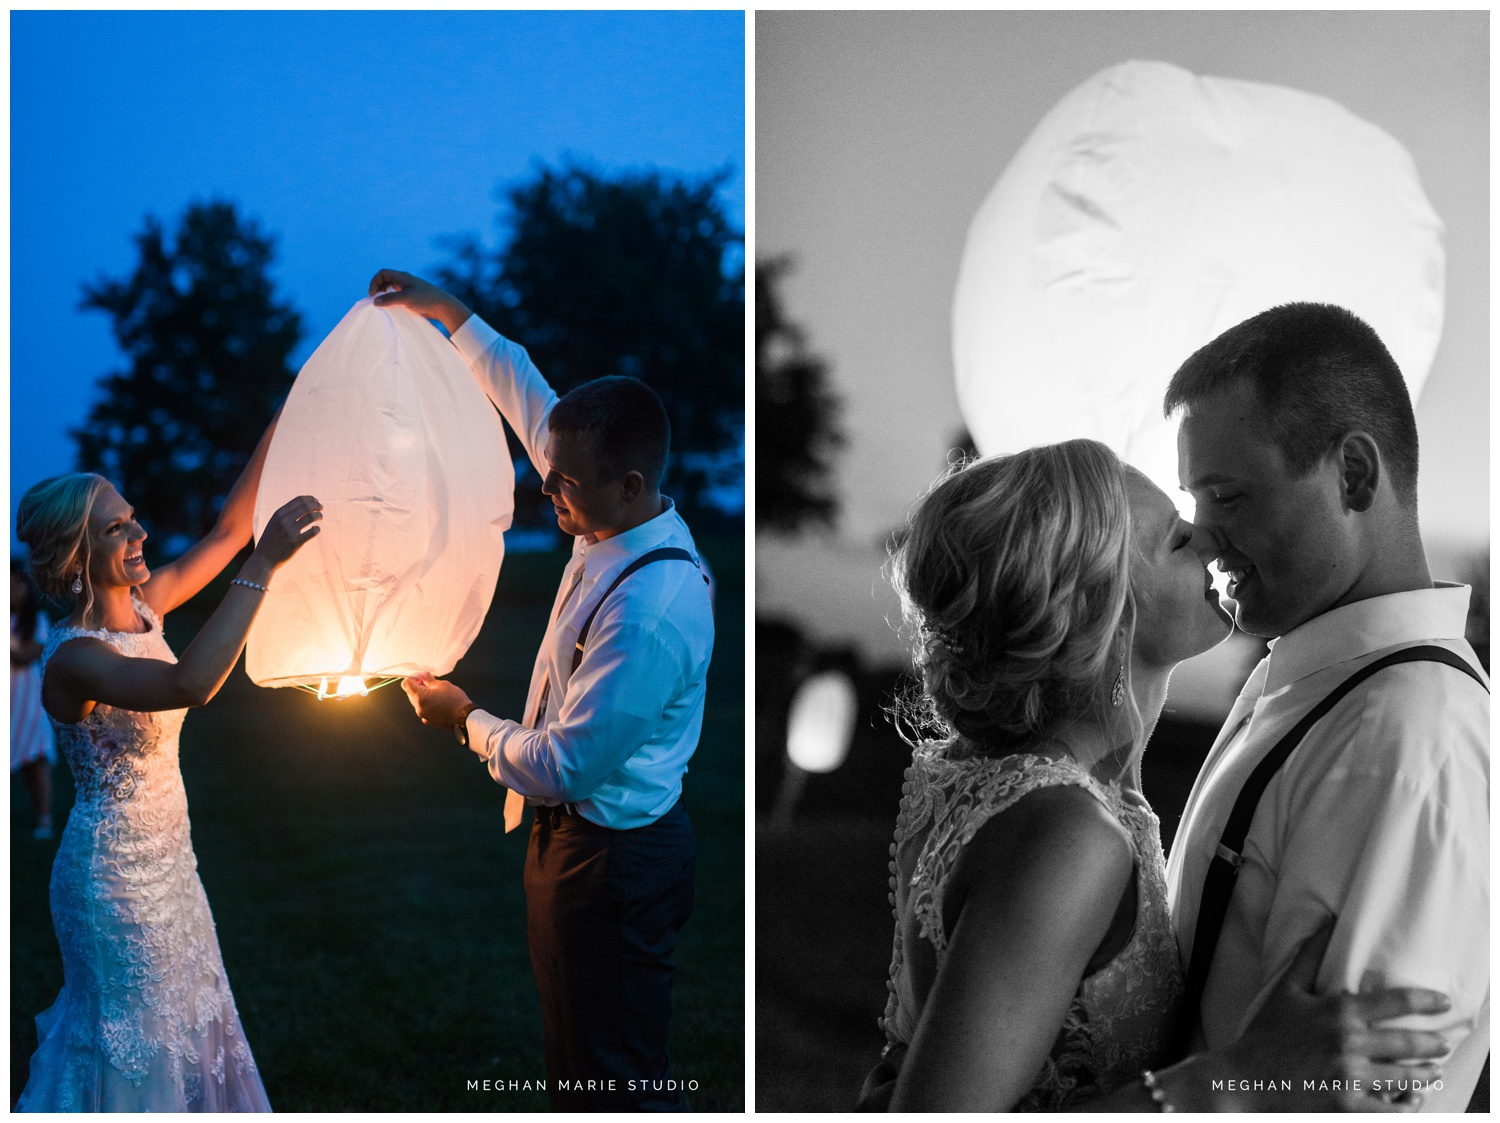 meghan marie studio wedding photographer ohio troy dayton columbus small town rustic rural farm cows vintage mauves dusty rose pinks whites ivorys grays f1 sound paper lanterns pearls_0662.jpg